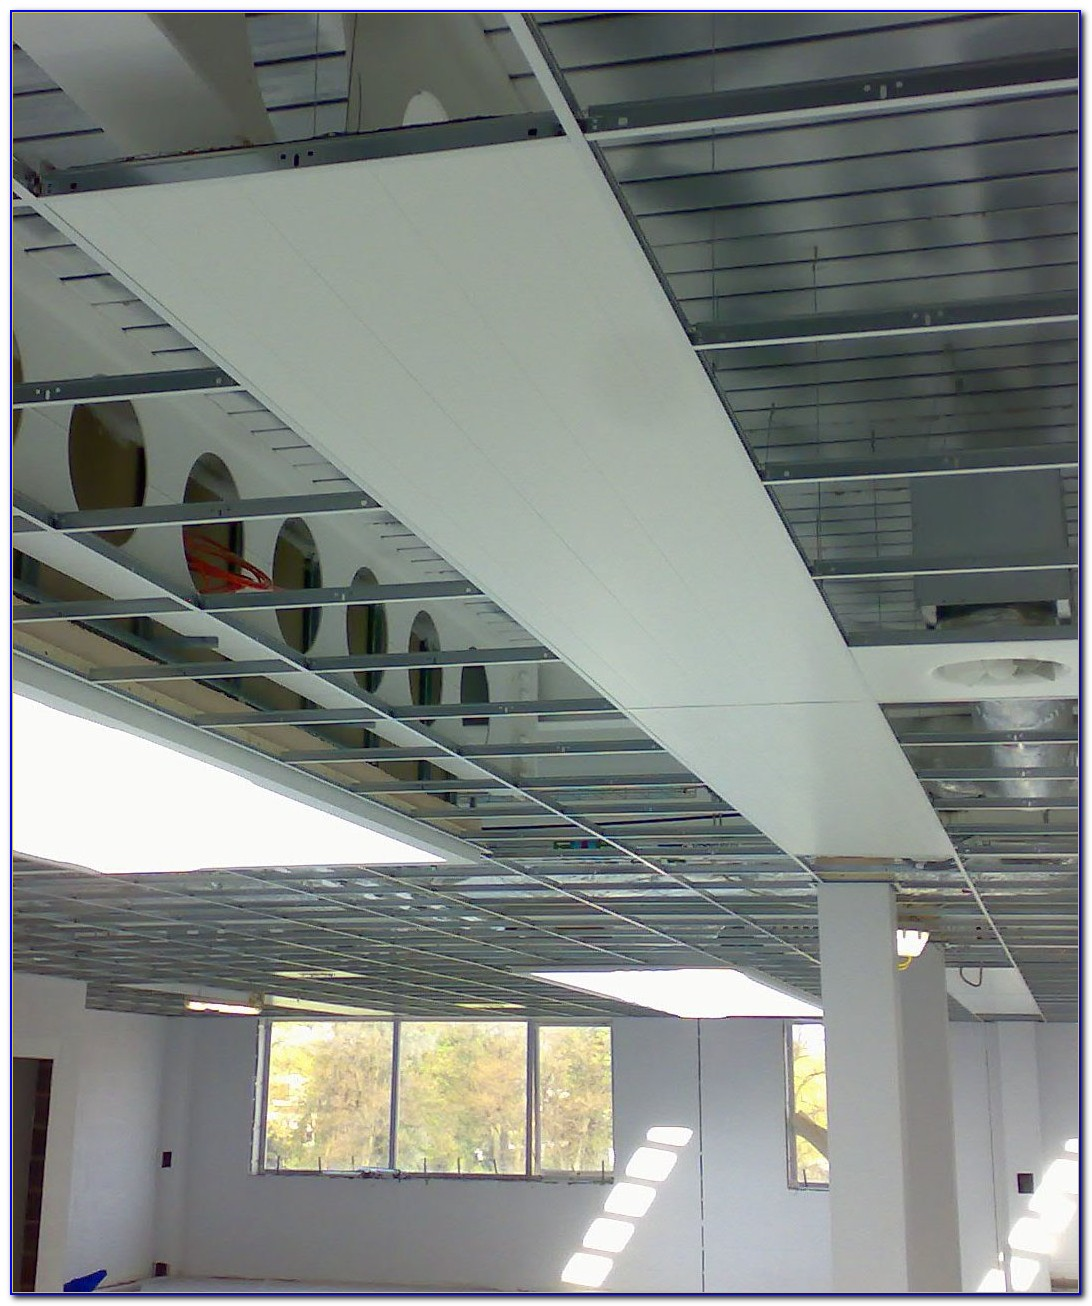 Radiant Heating Ceiling Panels